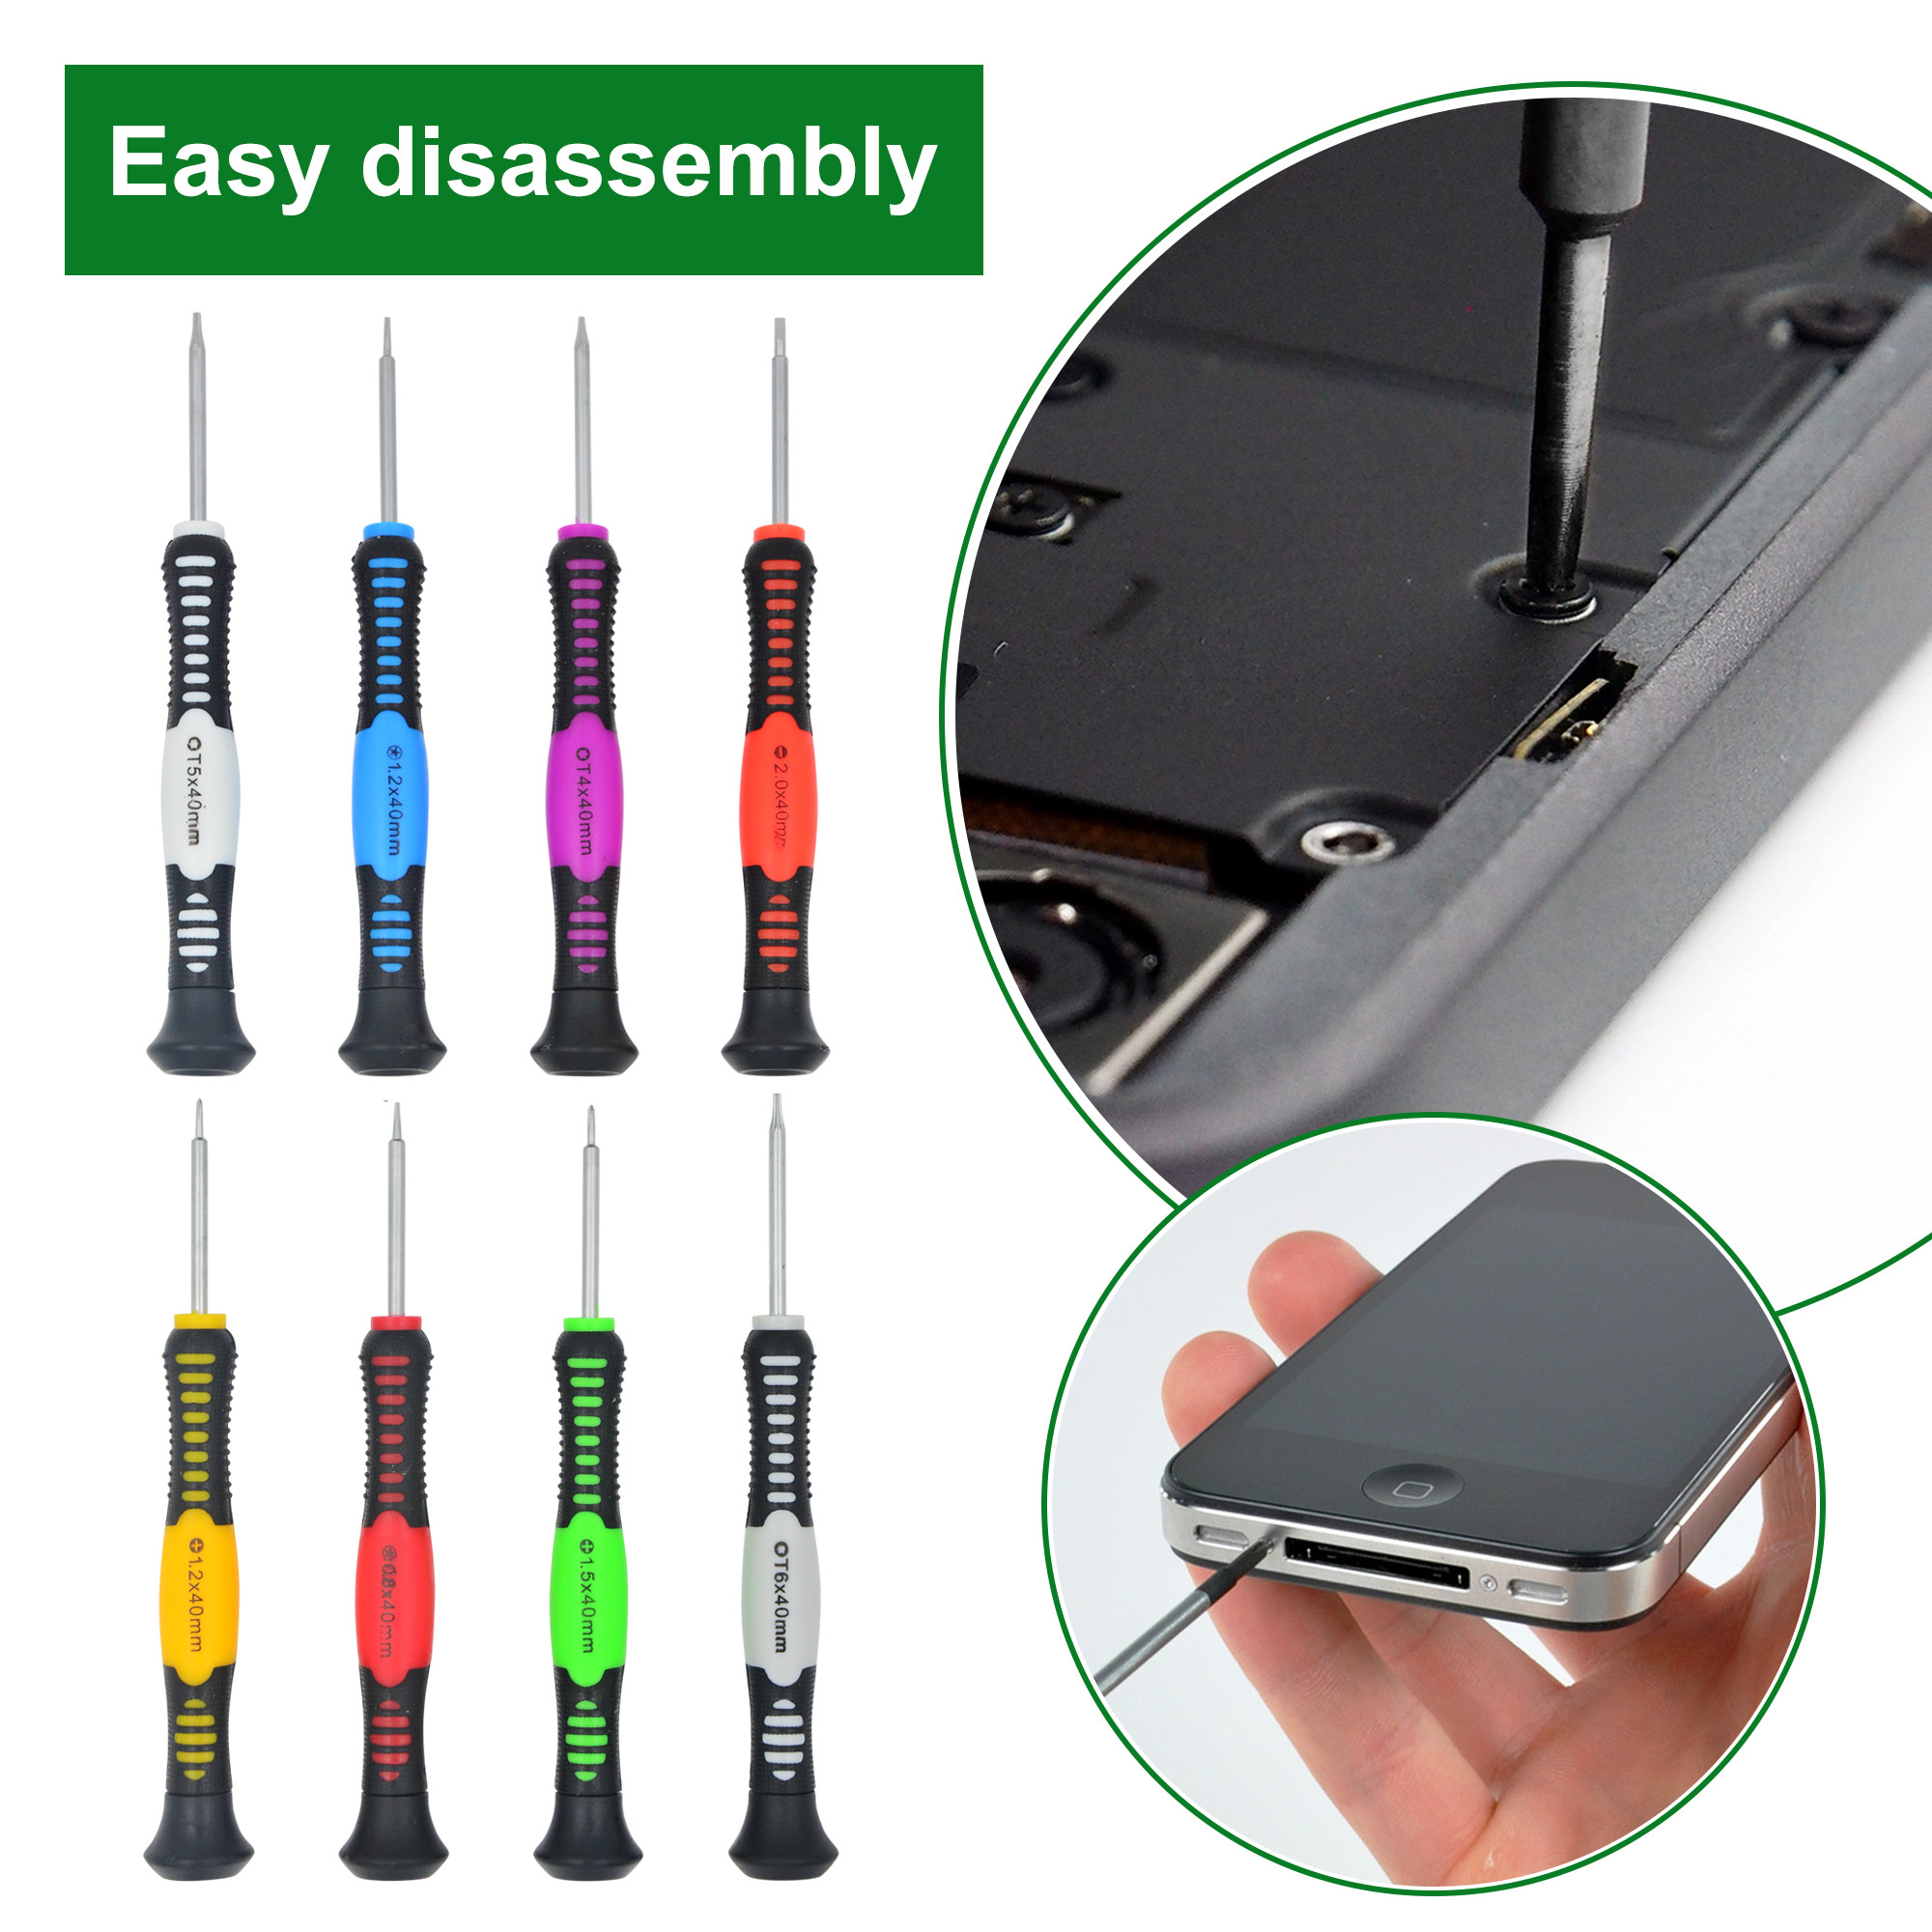 MENGS® 16 in 1 Repair Opening Tools Kit Screwdriver Set For iphone ,ipad 1,2,3,4,5,6,6 Plus, ipad 1, 2, 3, 4 ipod itouch PSP NDS & HTC , Samsung Galaxy S2, ...